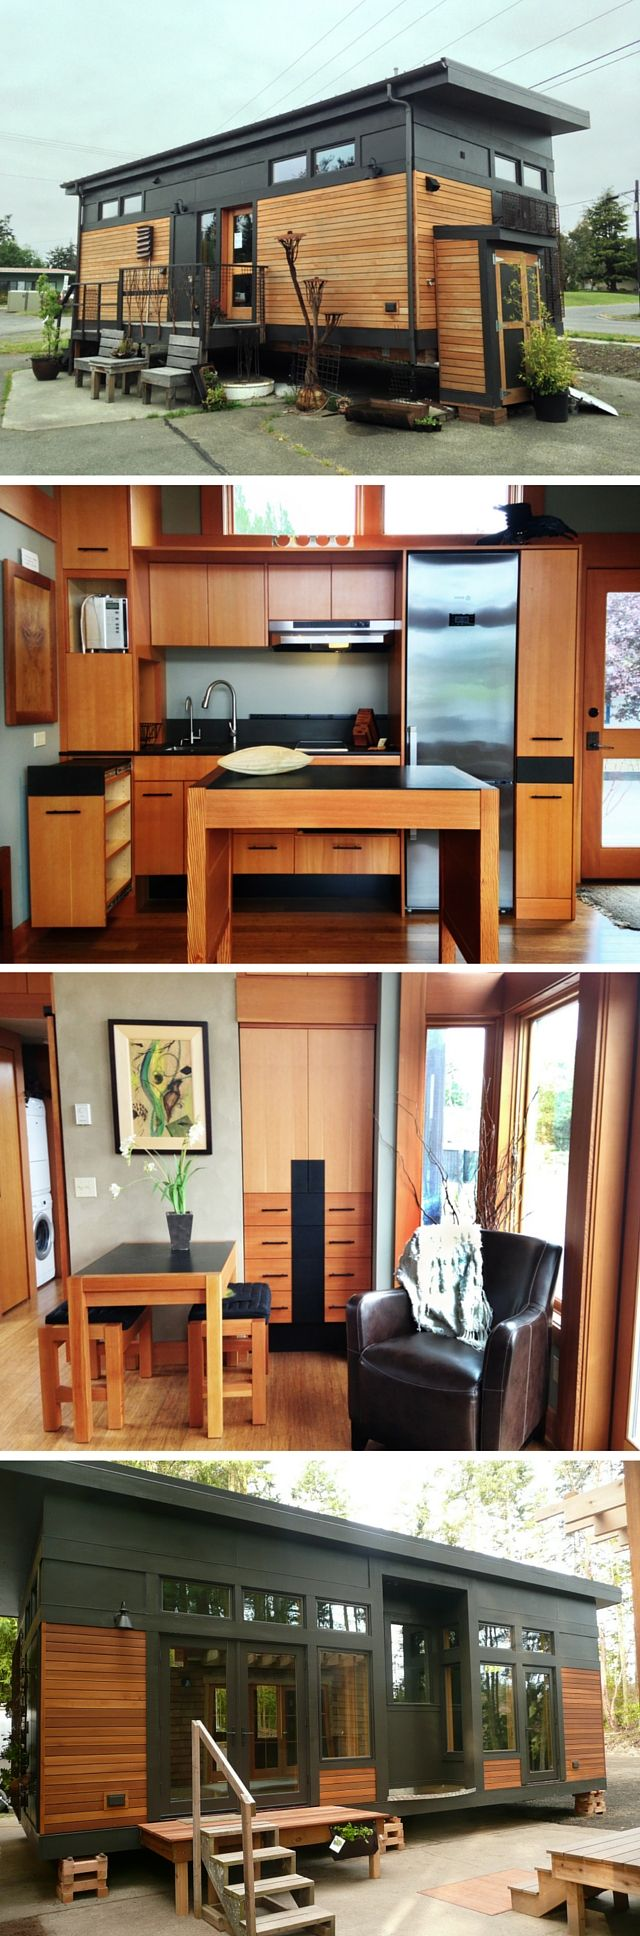 Creative Ideas For Small Homes Part - 32: A 450 Sq Ft Tiny House Named The Waterhaus